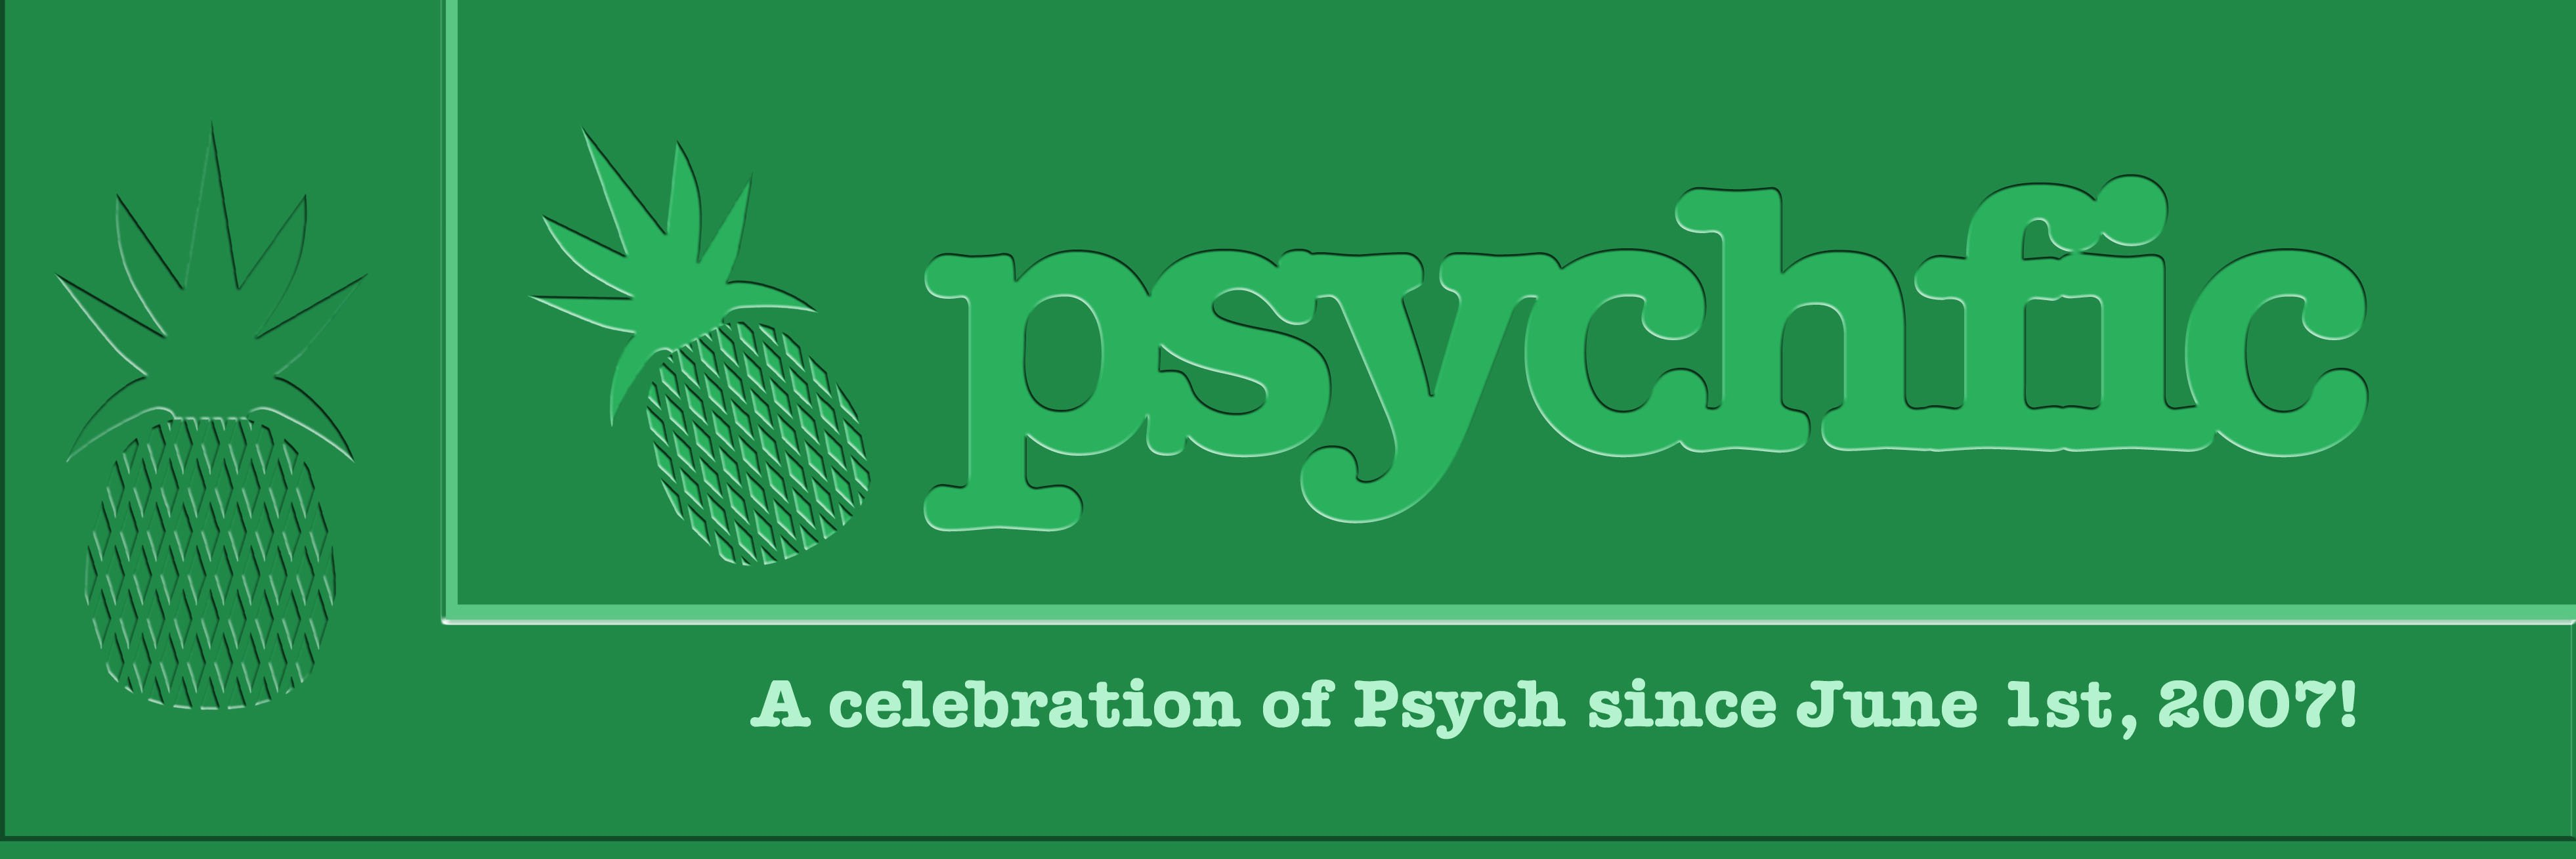 Psych fans! Its been tough & everything sucks so I wanted to give you a small gift to maybe make these long days ju… https://t.co/xVJV5NVG8e